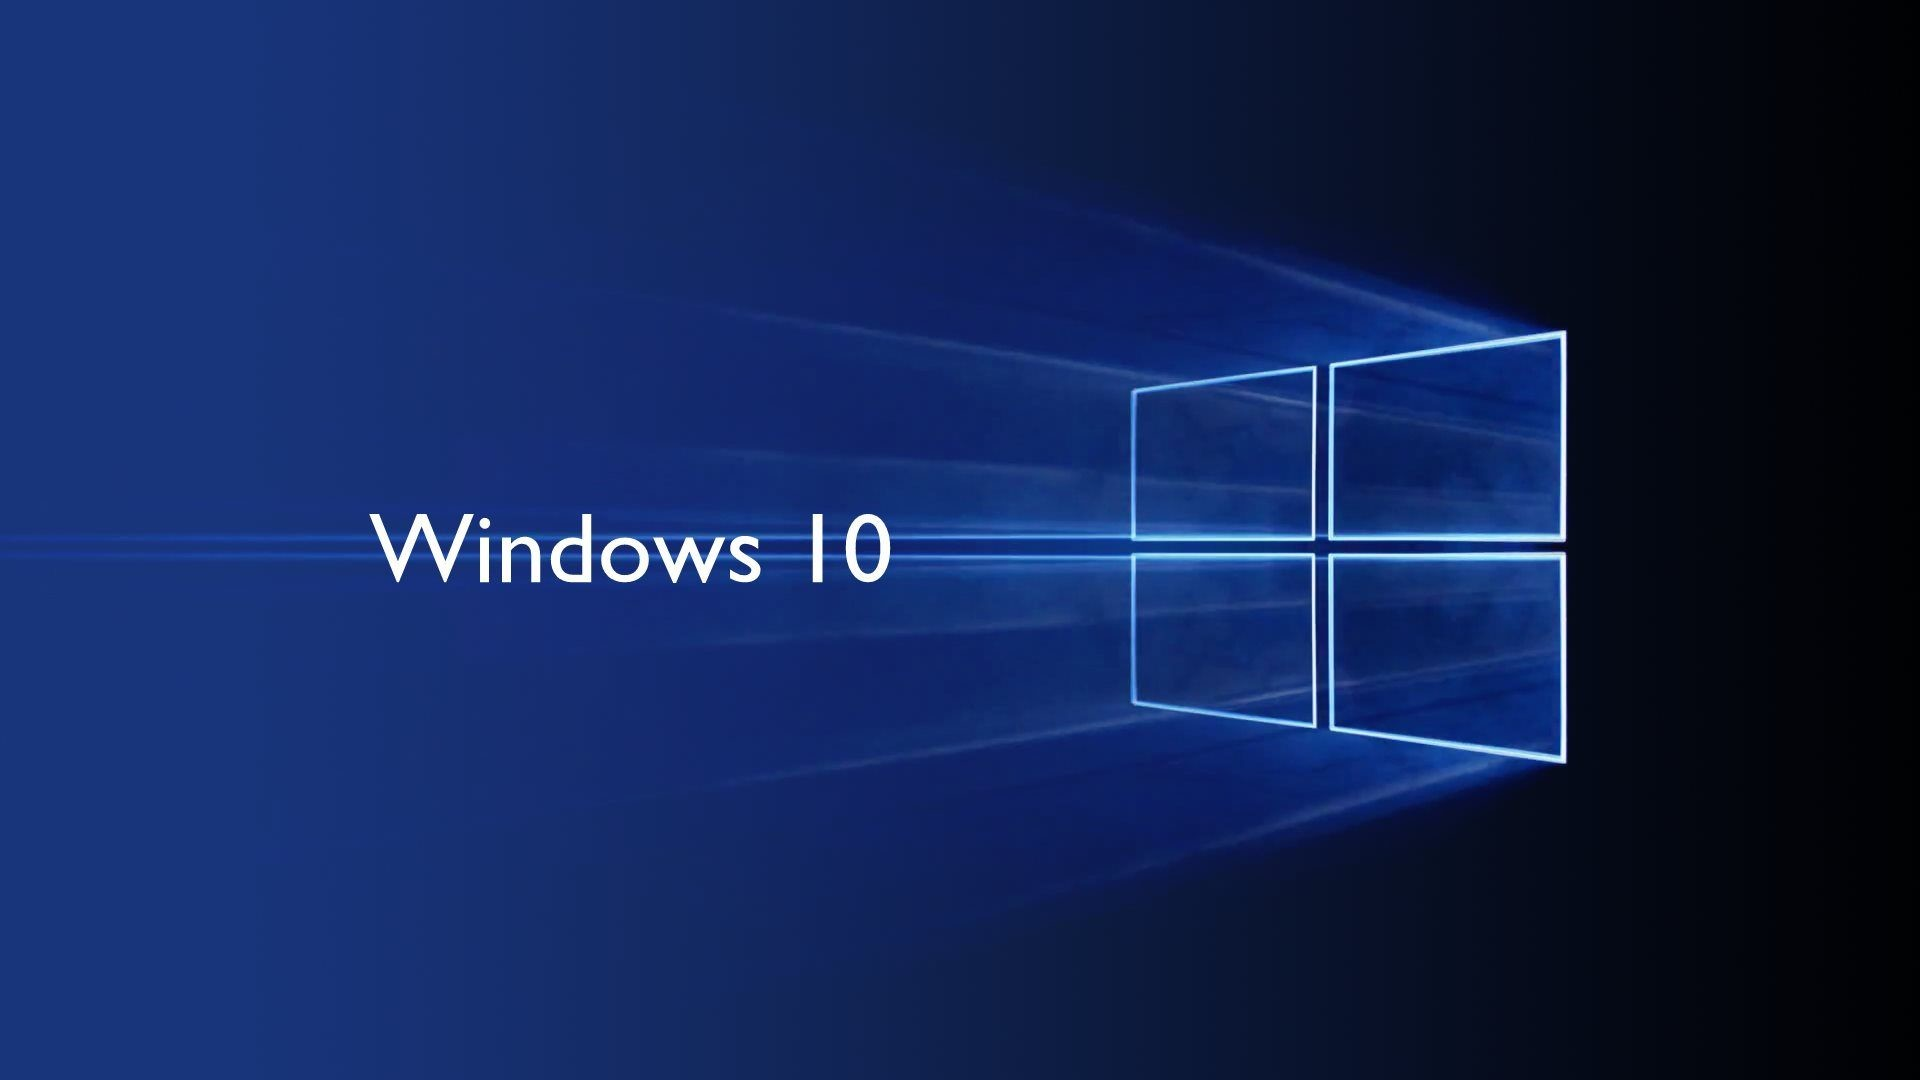 28+ Windows 10 Hd Wallpaper Pictures